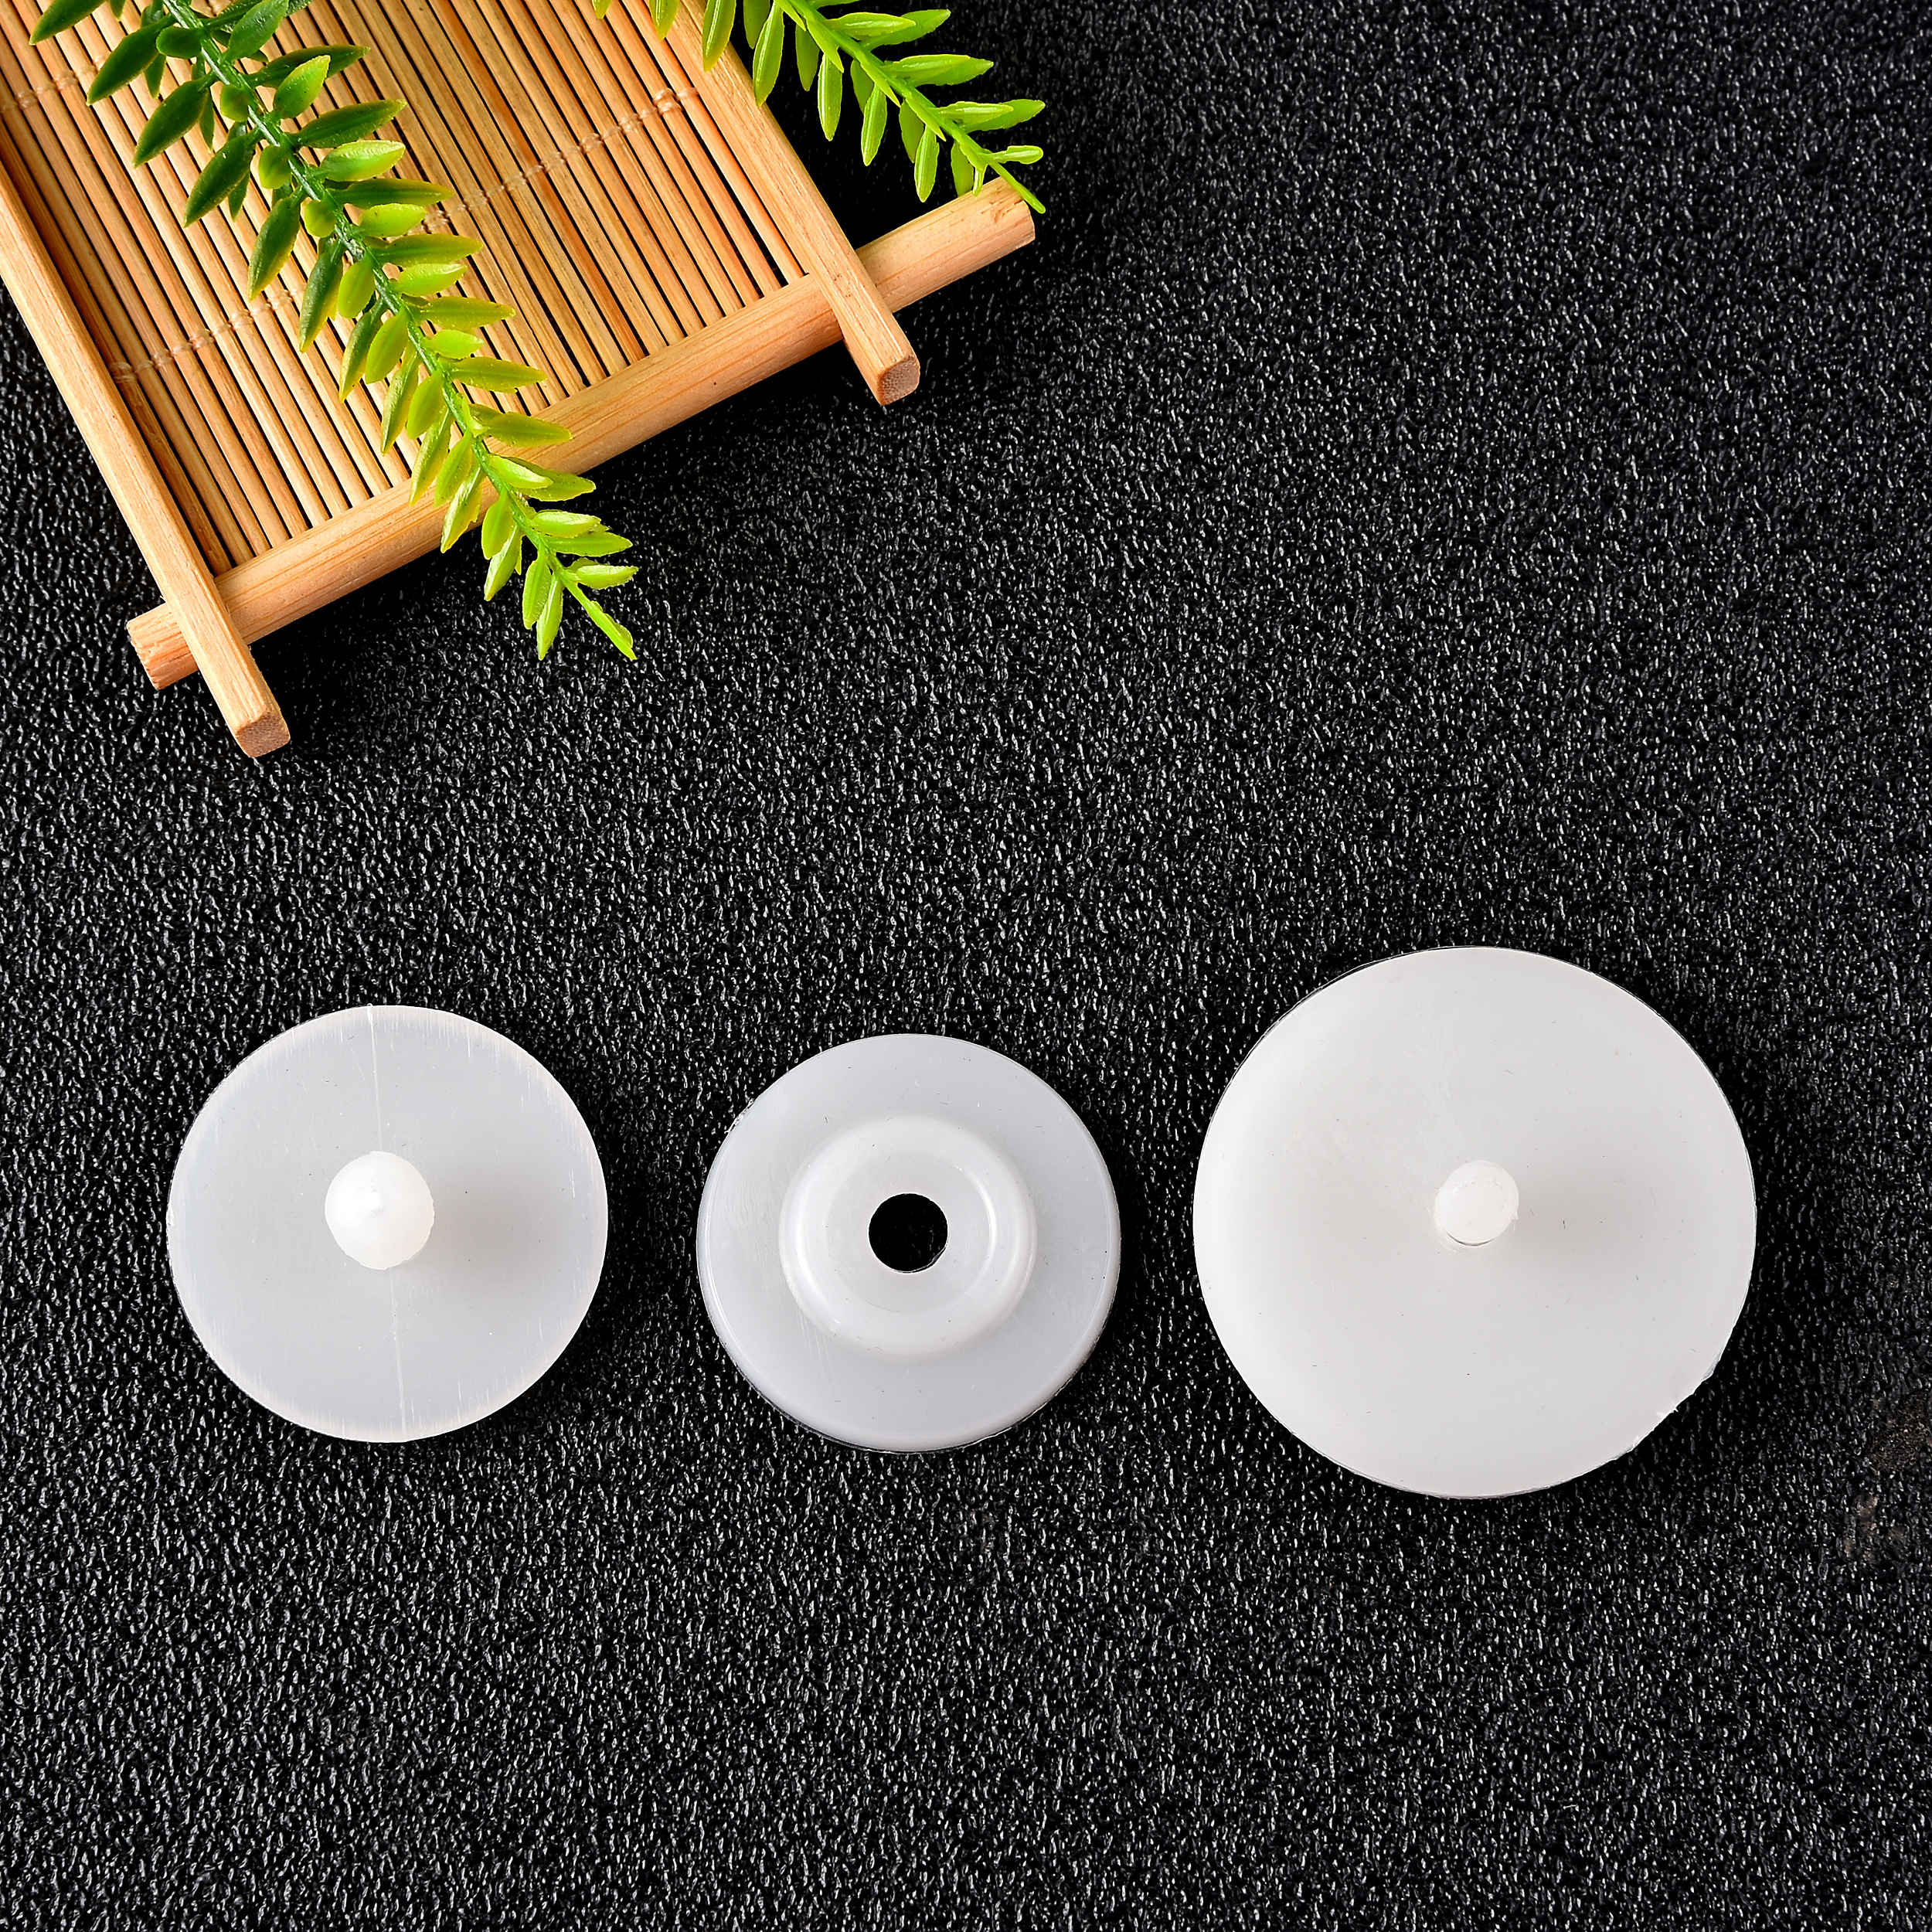 20Sets 15/20/25/30/35mm White Plastic Doll Joints Dolls Accessories For Stuffed Toys Teddy Bear Making DIY Crafts Child Gift